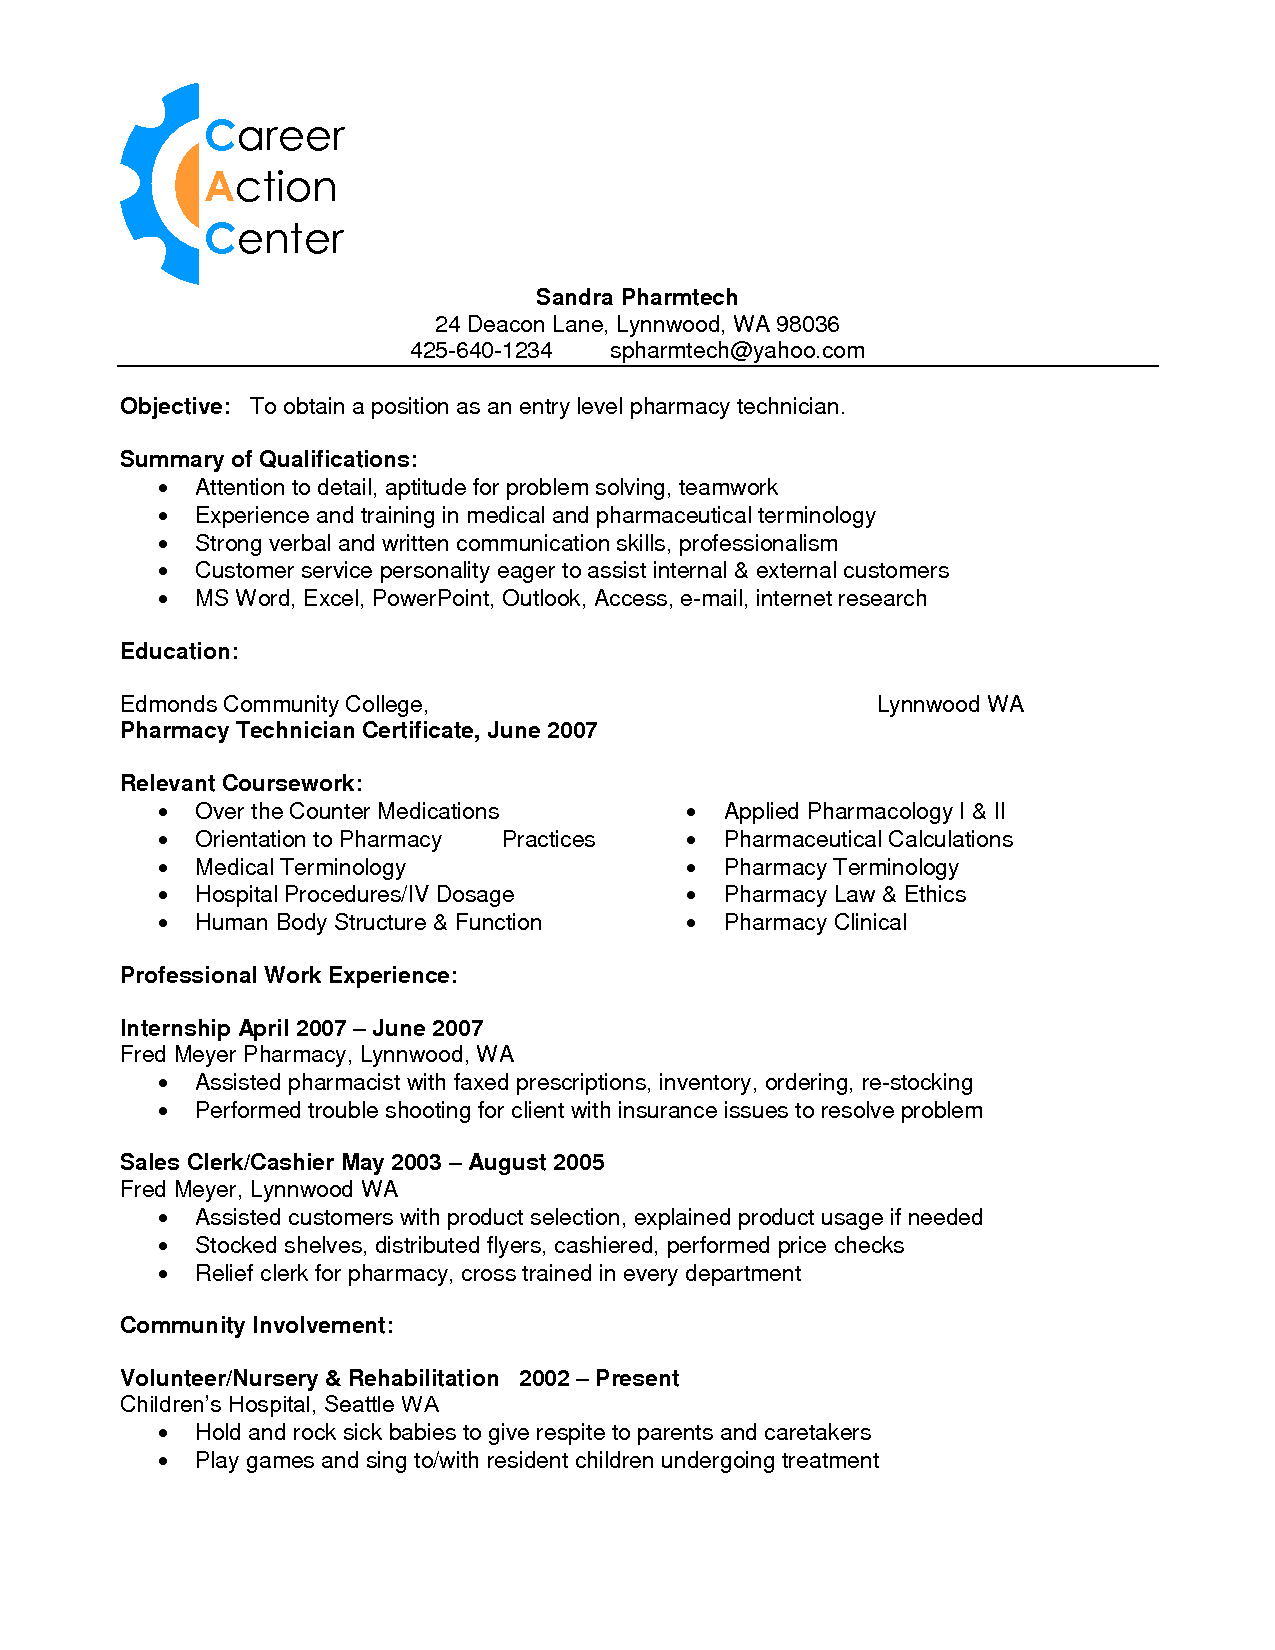 Automotive Technician Resume Objective Sample Resume For Bank Teller At Entry Level Http Www